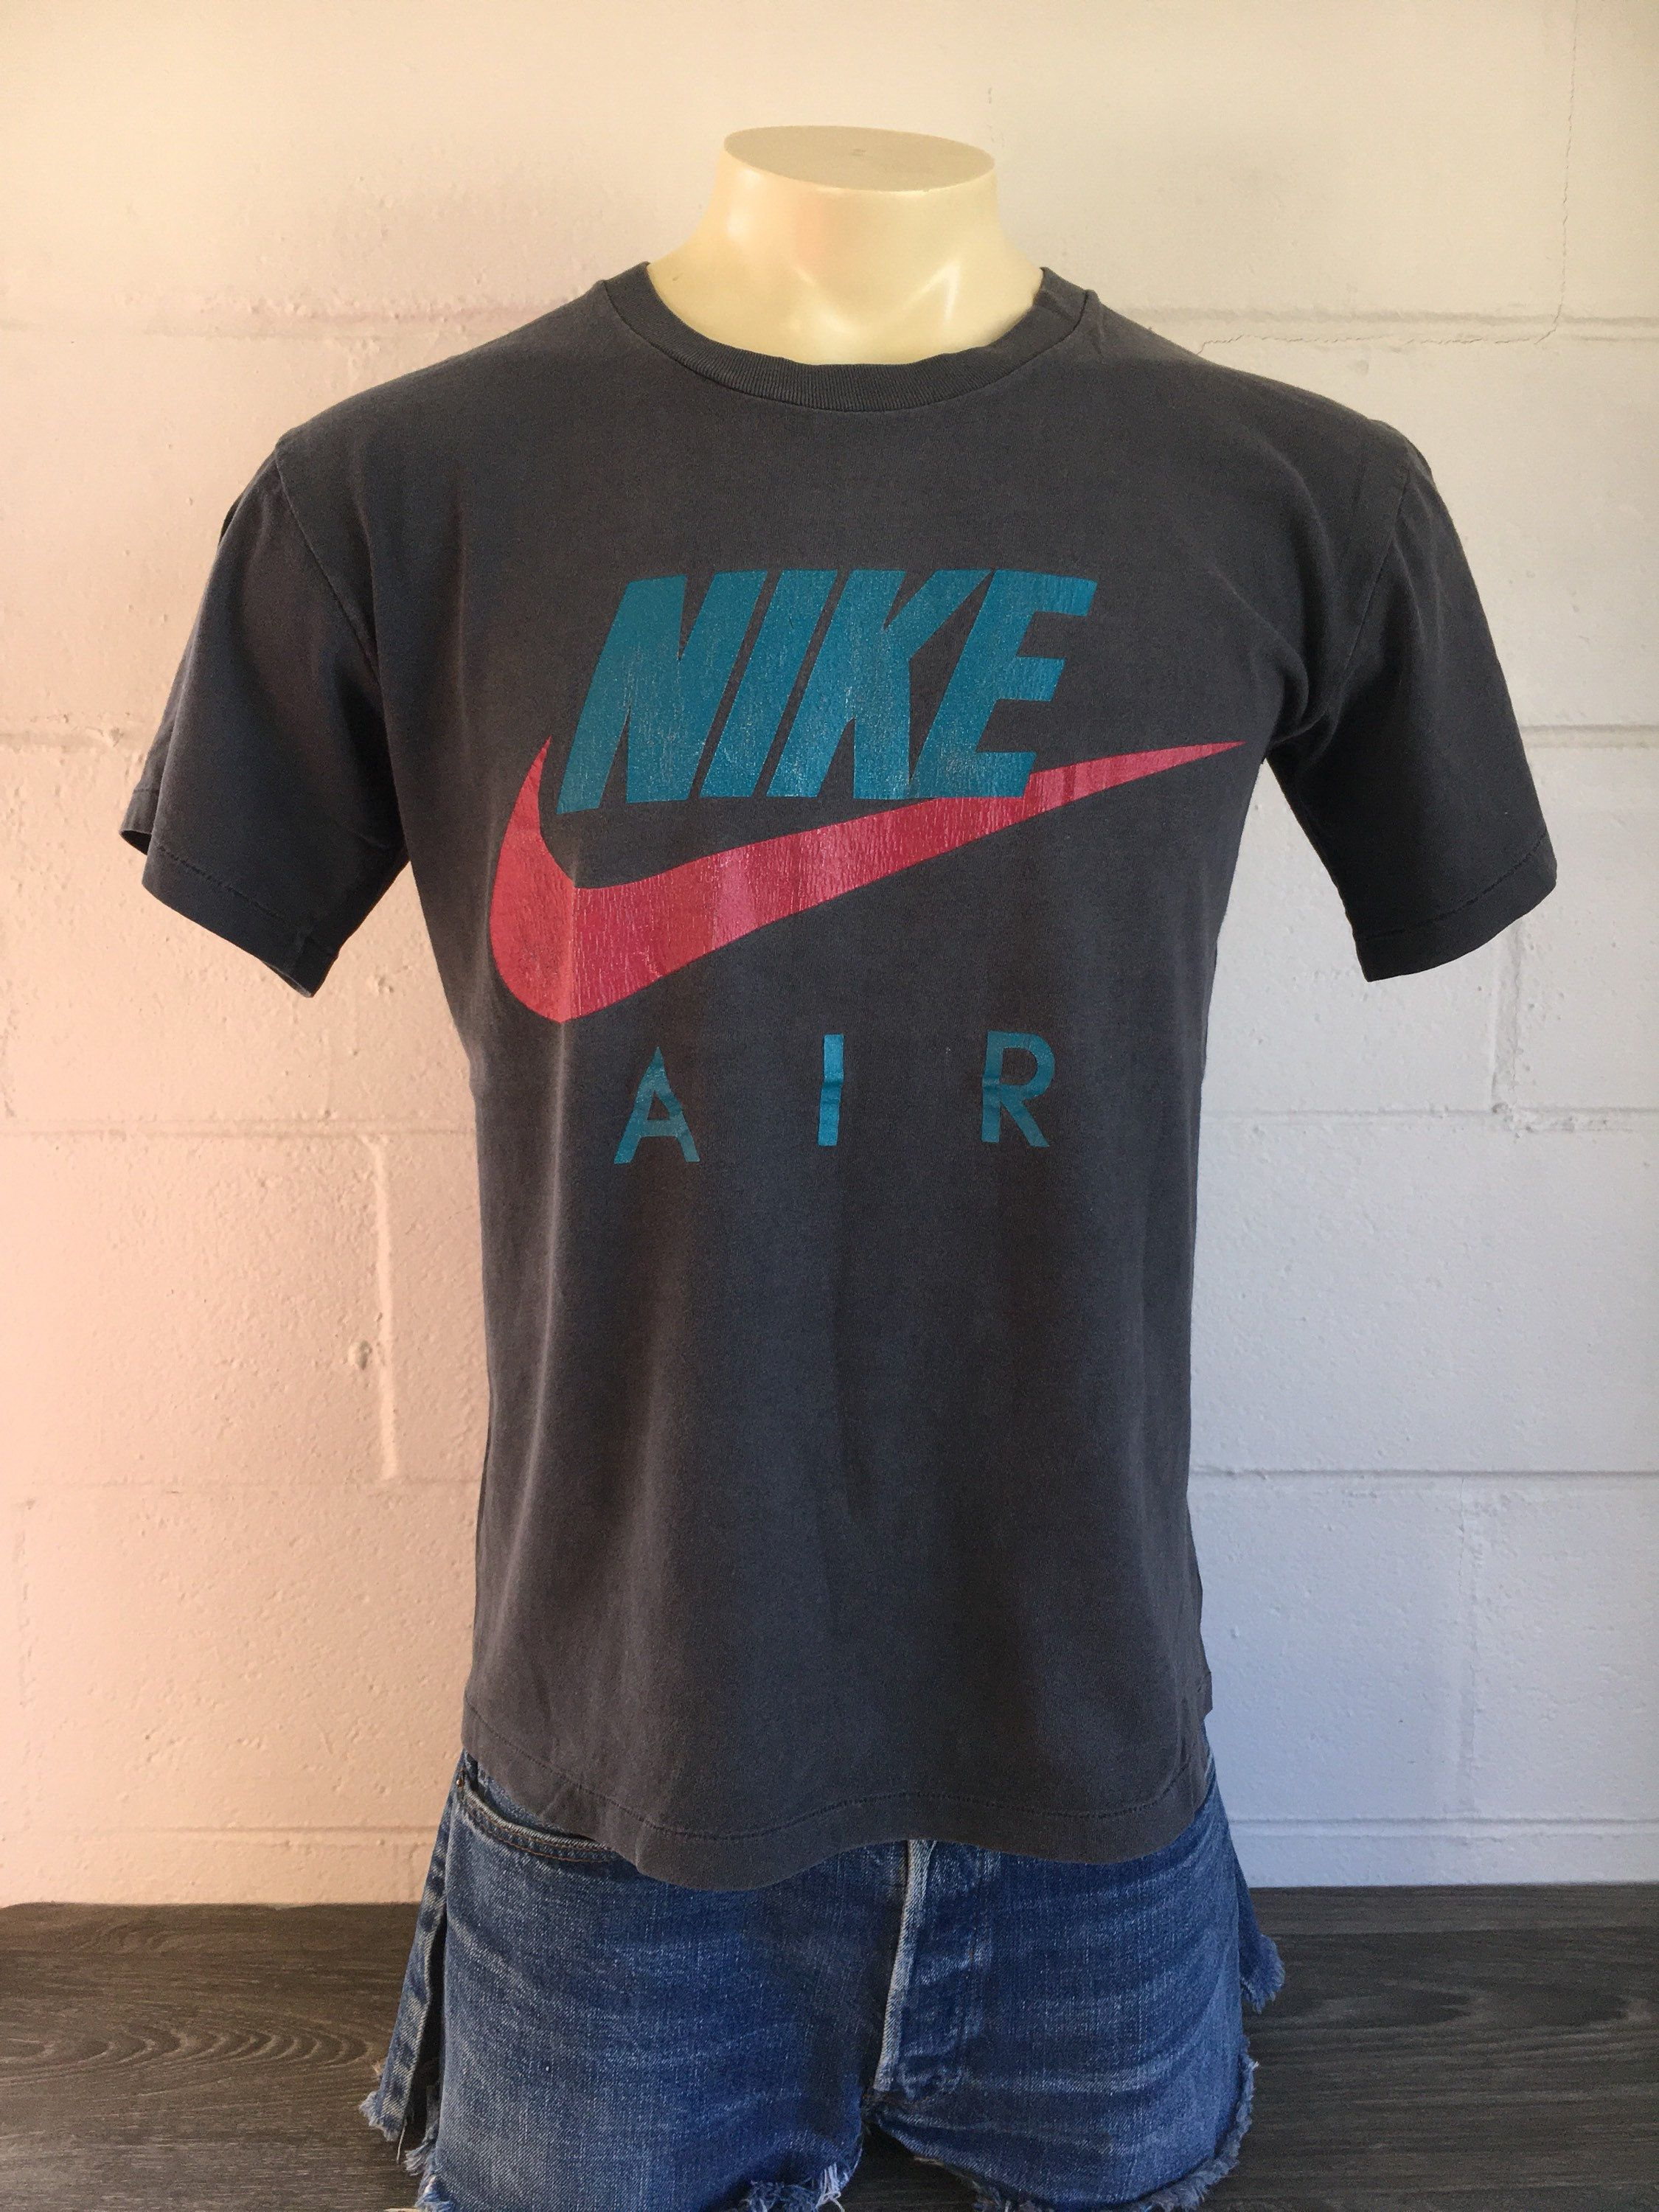 dd88a5133023 Nike Air Tshirt Vintage 90s Big Swoosh Logo Shirt Single Stitch Jordan Tee  Burnout Black Medium